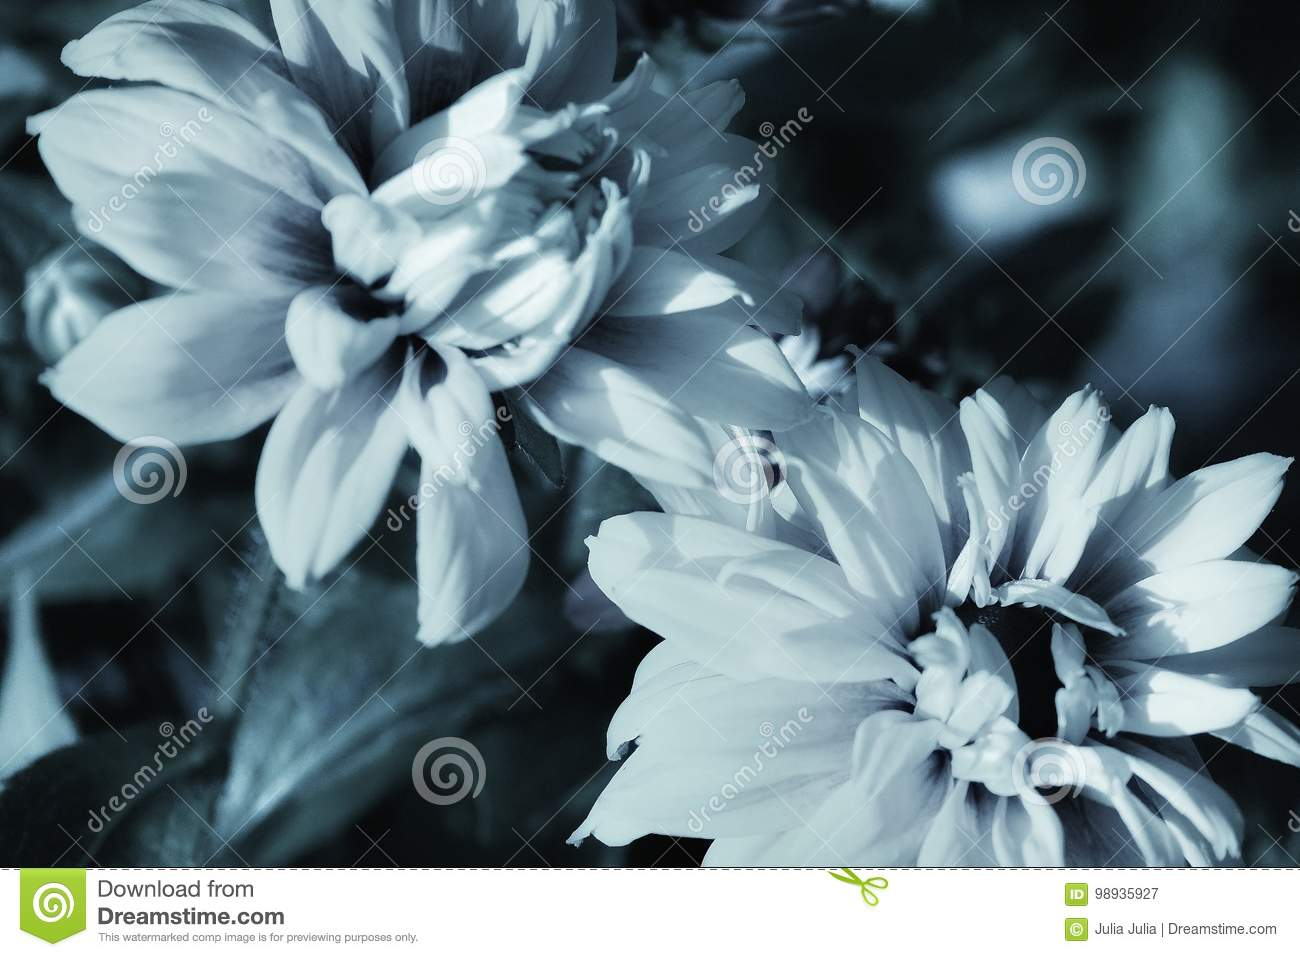 Beautiful flowers no colors black and white photography nature stock beautiful flowers no colors black and white photography nature izmirmasajfo